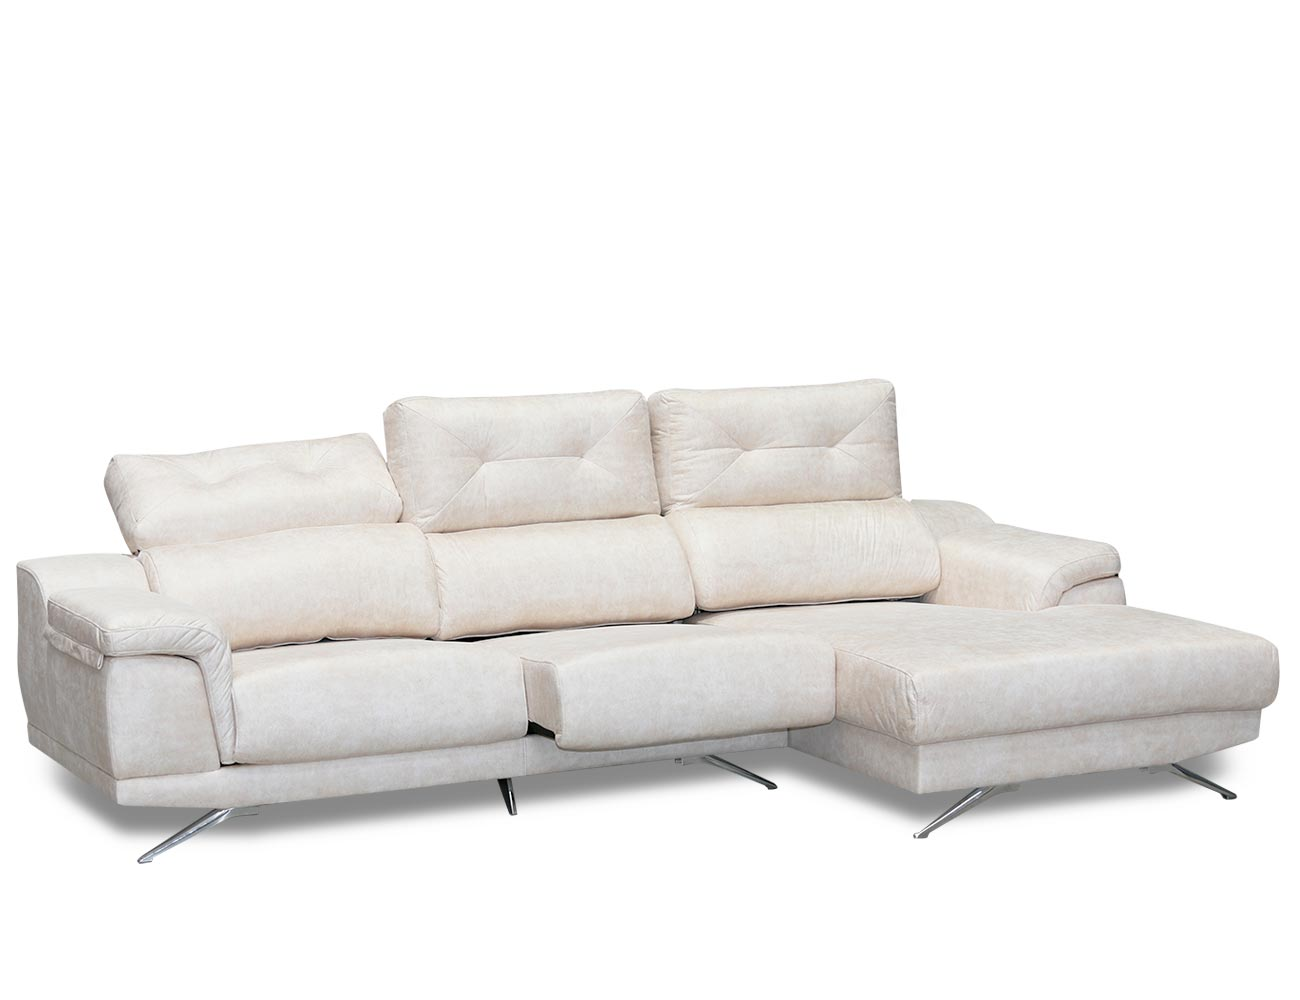 Sofa chaiselongue moderno anti manchas